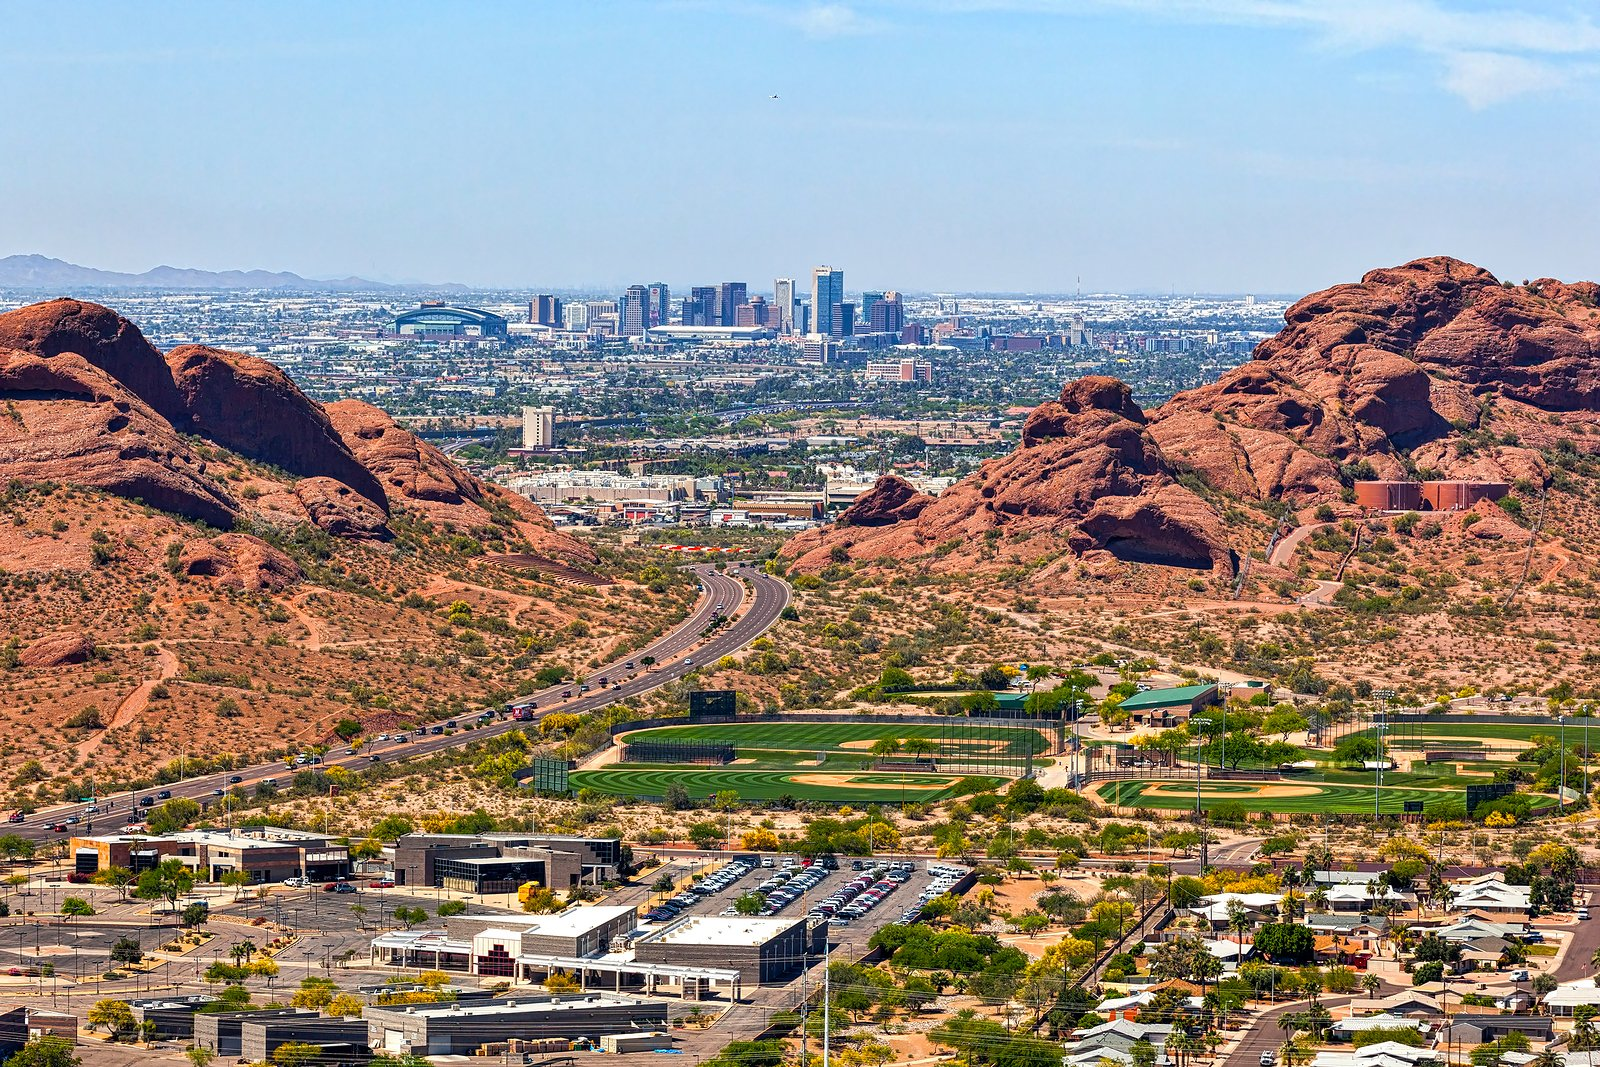 The Phoenix area has many low-priced active adult communities to offer homebuyers.